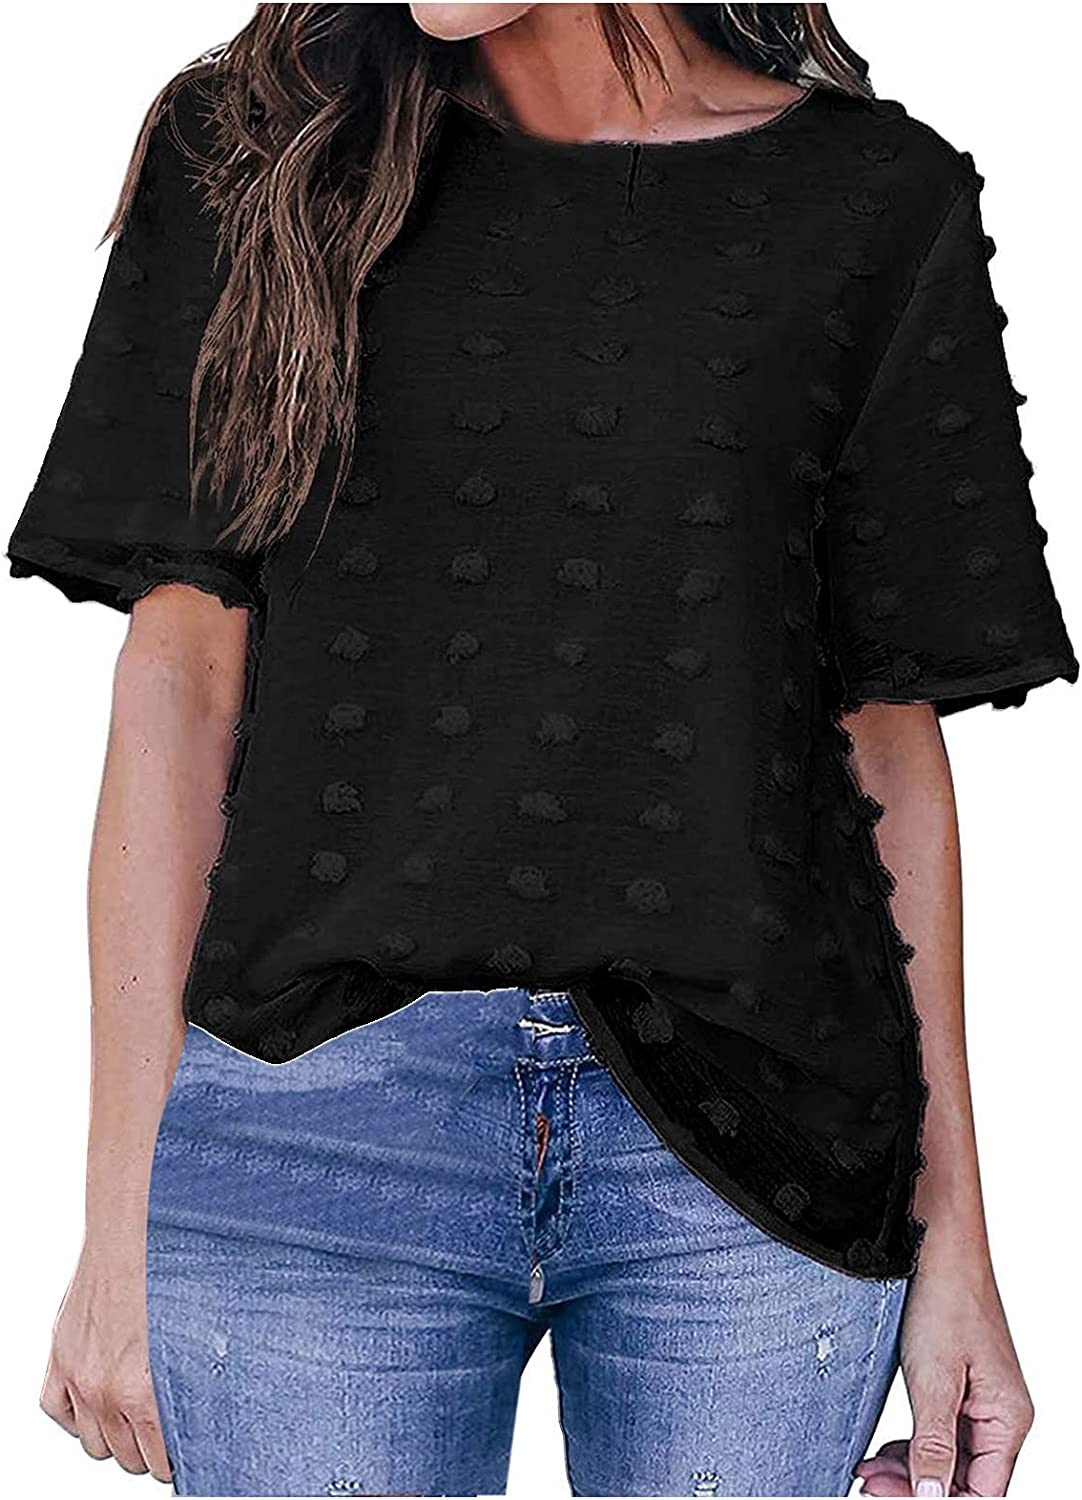 Women's Round O-Neck Short Sleeve Blouse Chiffon Dot Shirt Tops Loose Casual Pretty T-Shirt for Ladies